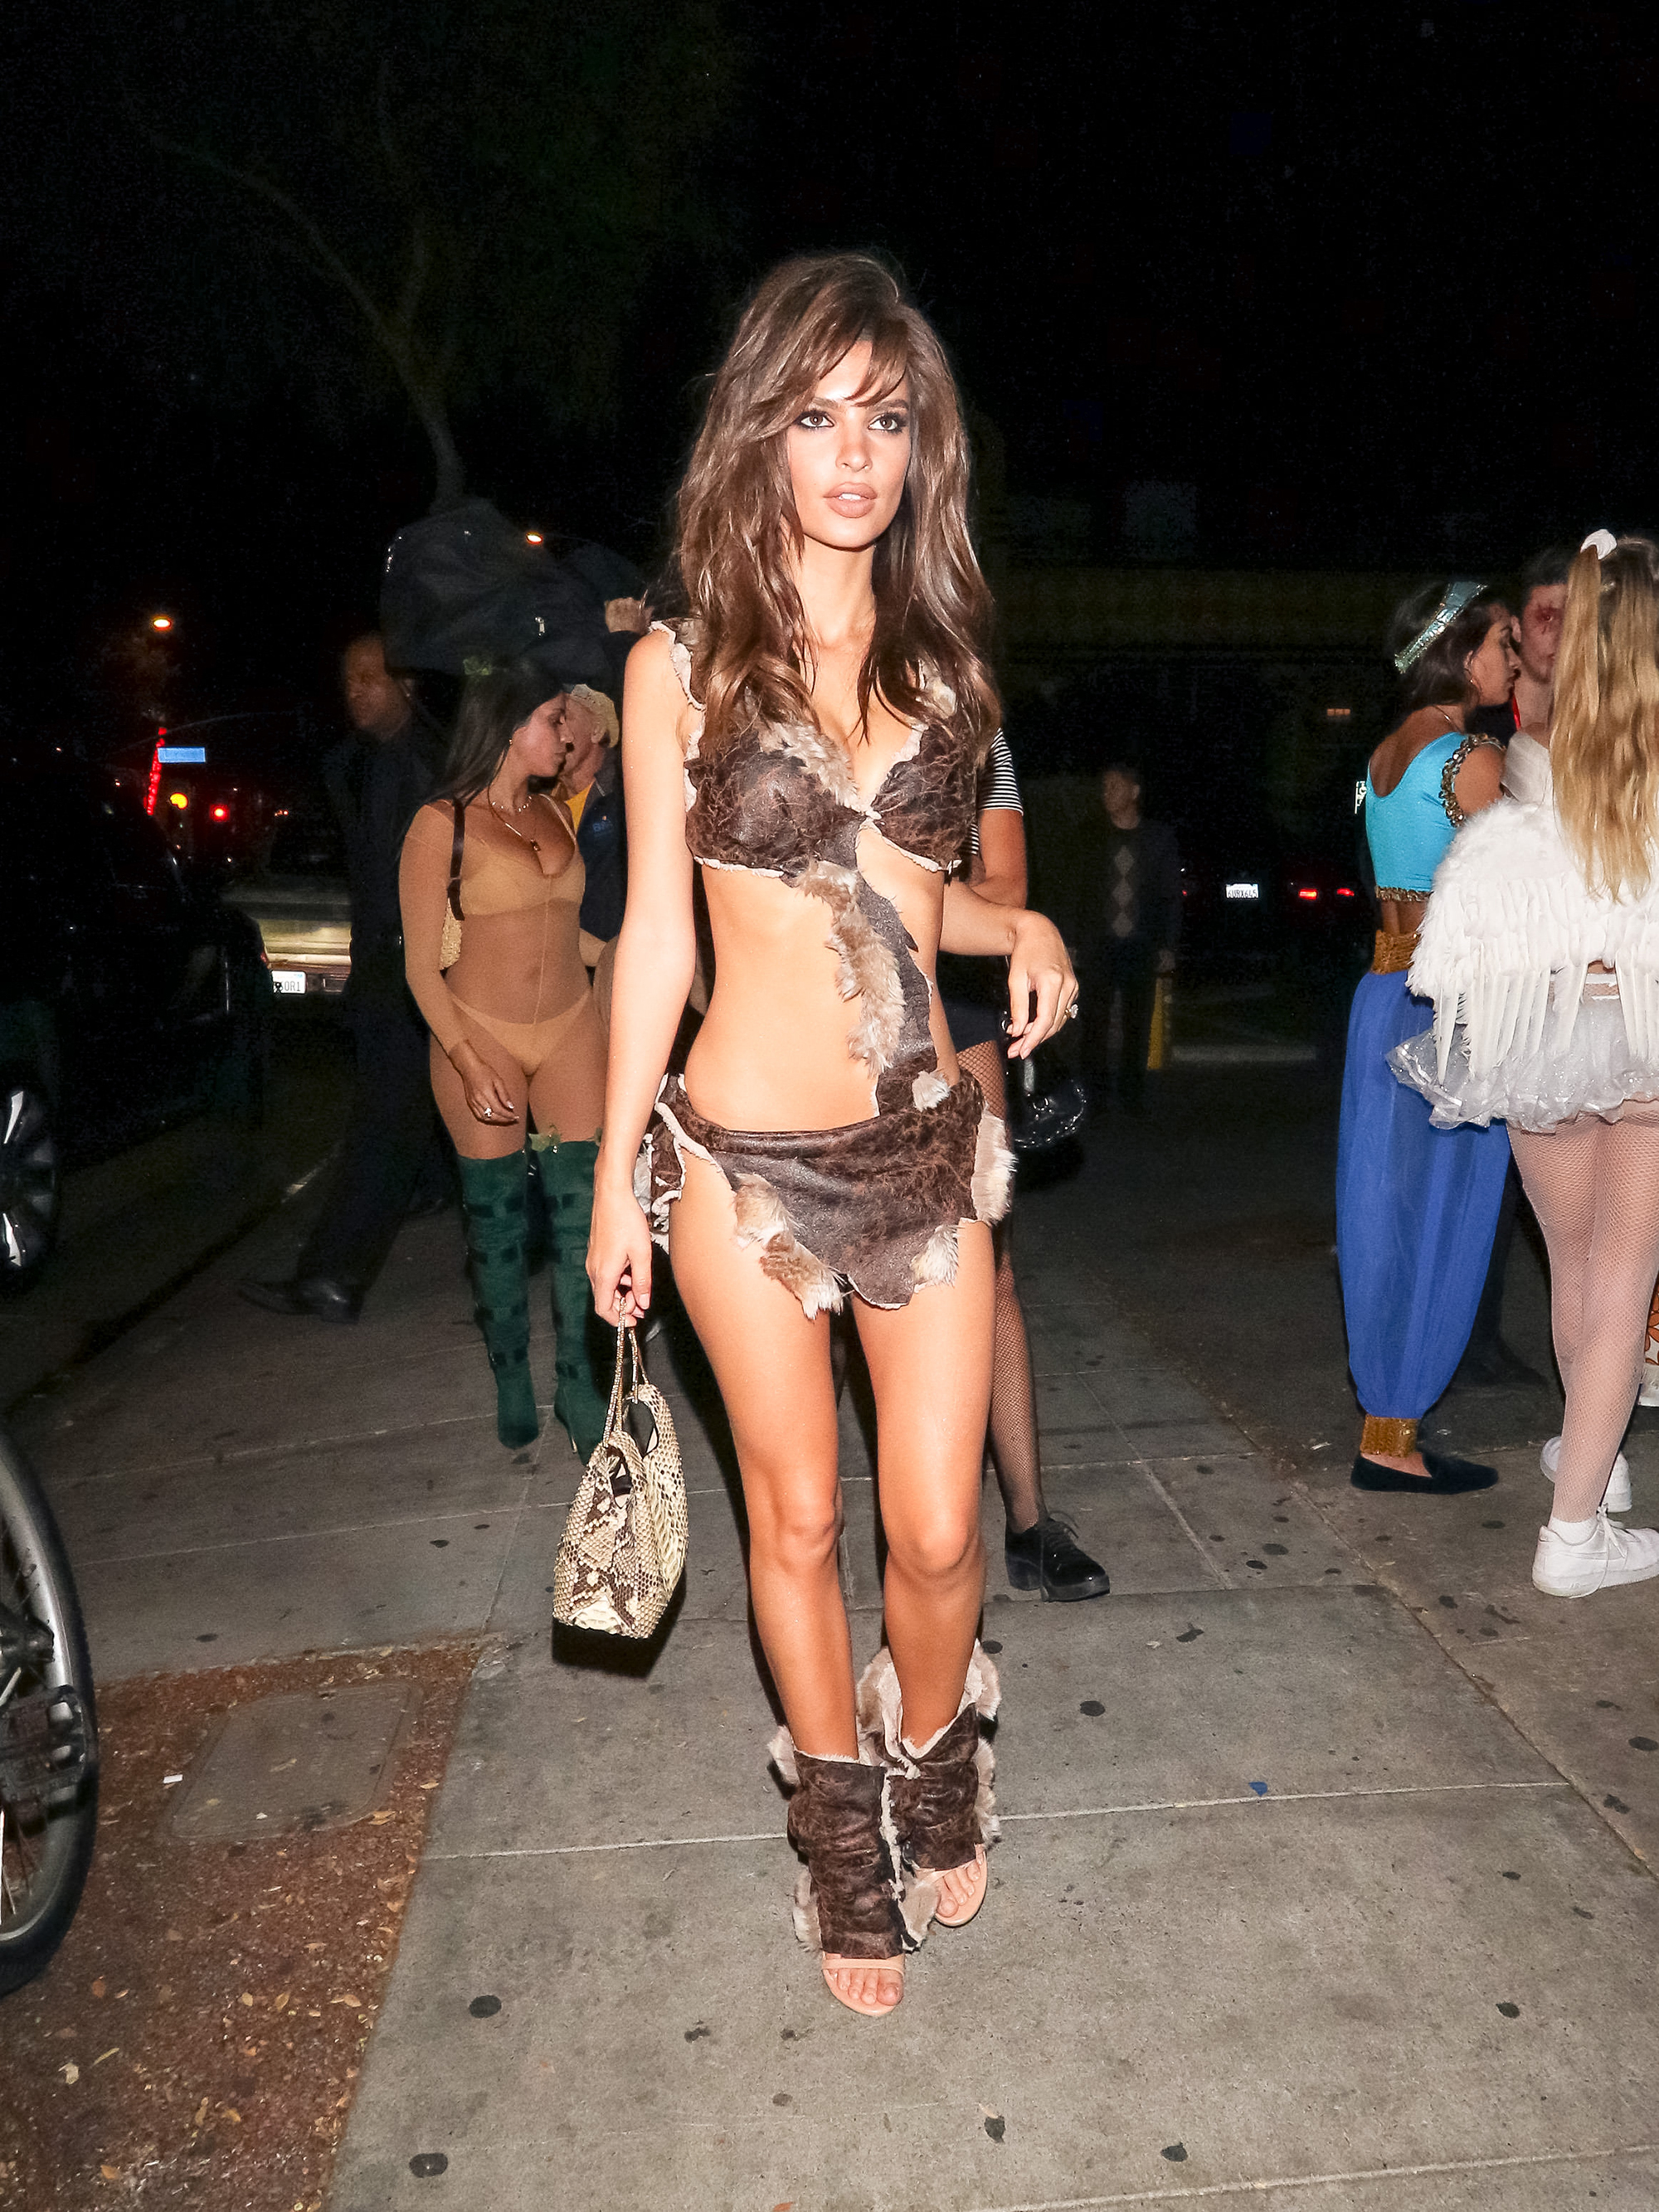 Emily Ratajkowski abs - Have abs, will costume. Ratajkowski went as Raquel Welch's scantily clad character in 1966's One Million Years B.C. for Halloween.